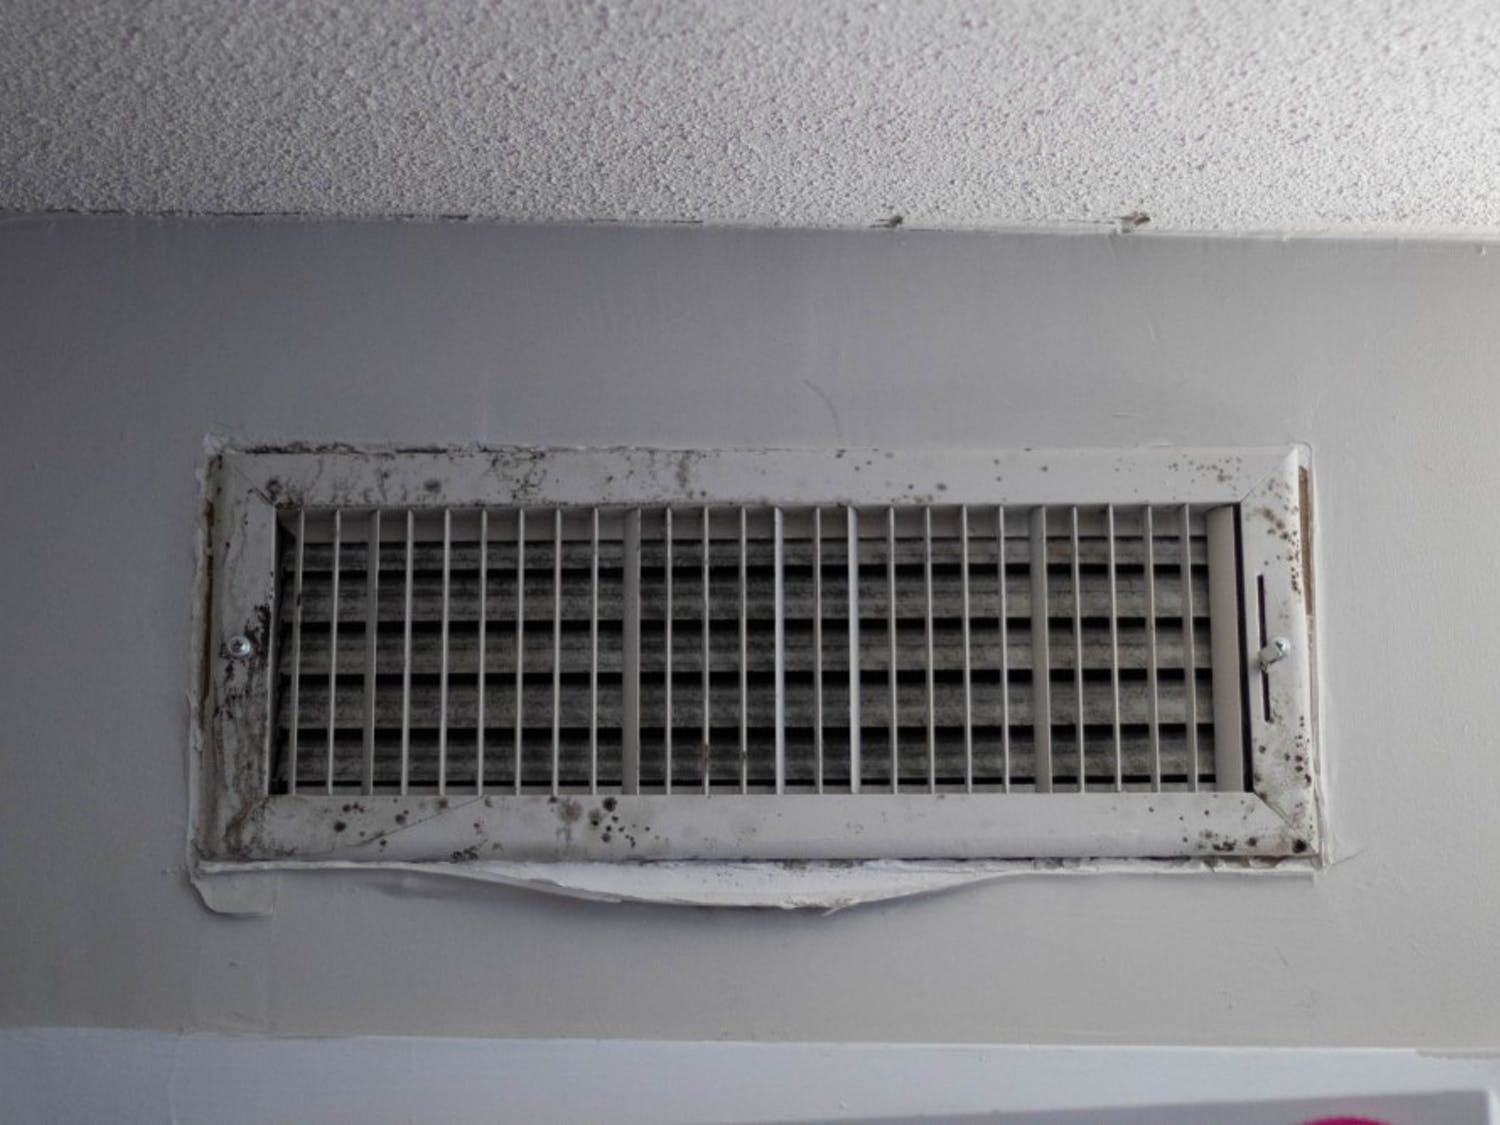 Mold growing on a vent in Granville Towers on Friday, Oct. 11, 2019. Residents have recently discovered mold in Granville Towers, forcing the Granville administration to relocate some residents to area hotels.